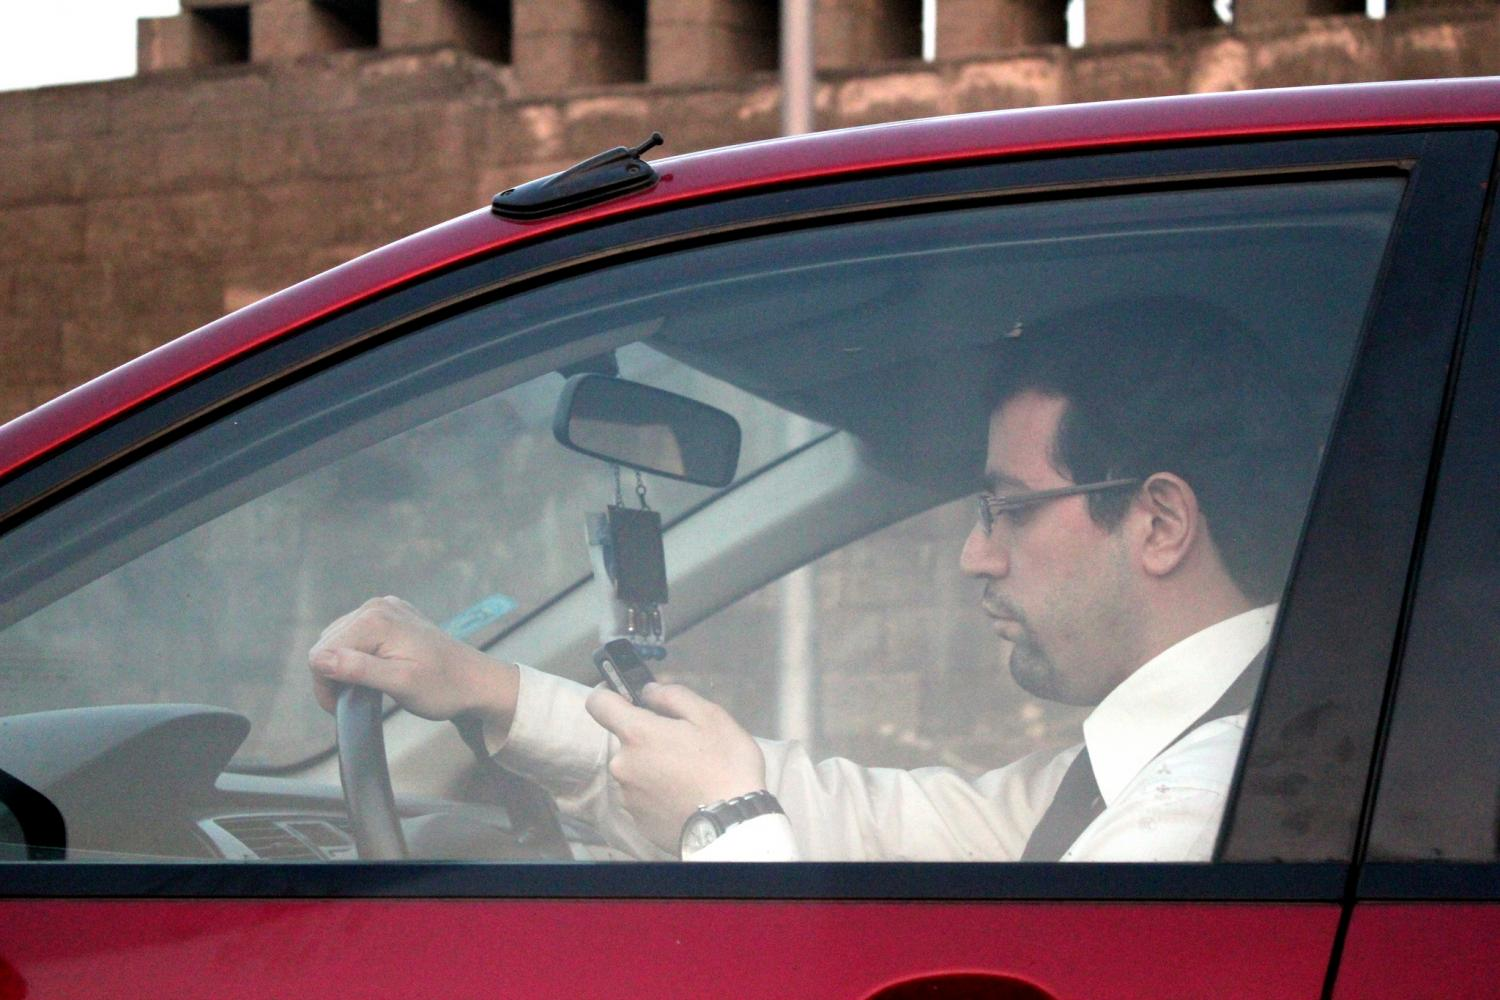 Man texting while at the wheel. Photo Credit/ ~W~ via Flickr